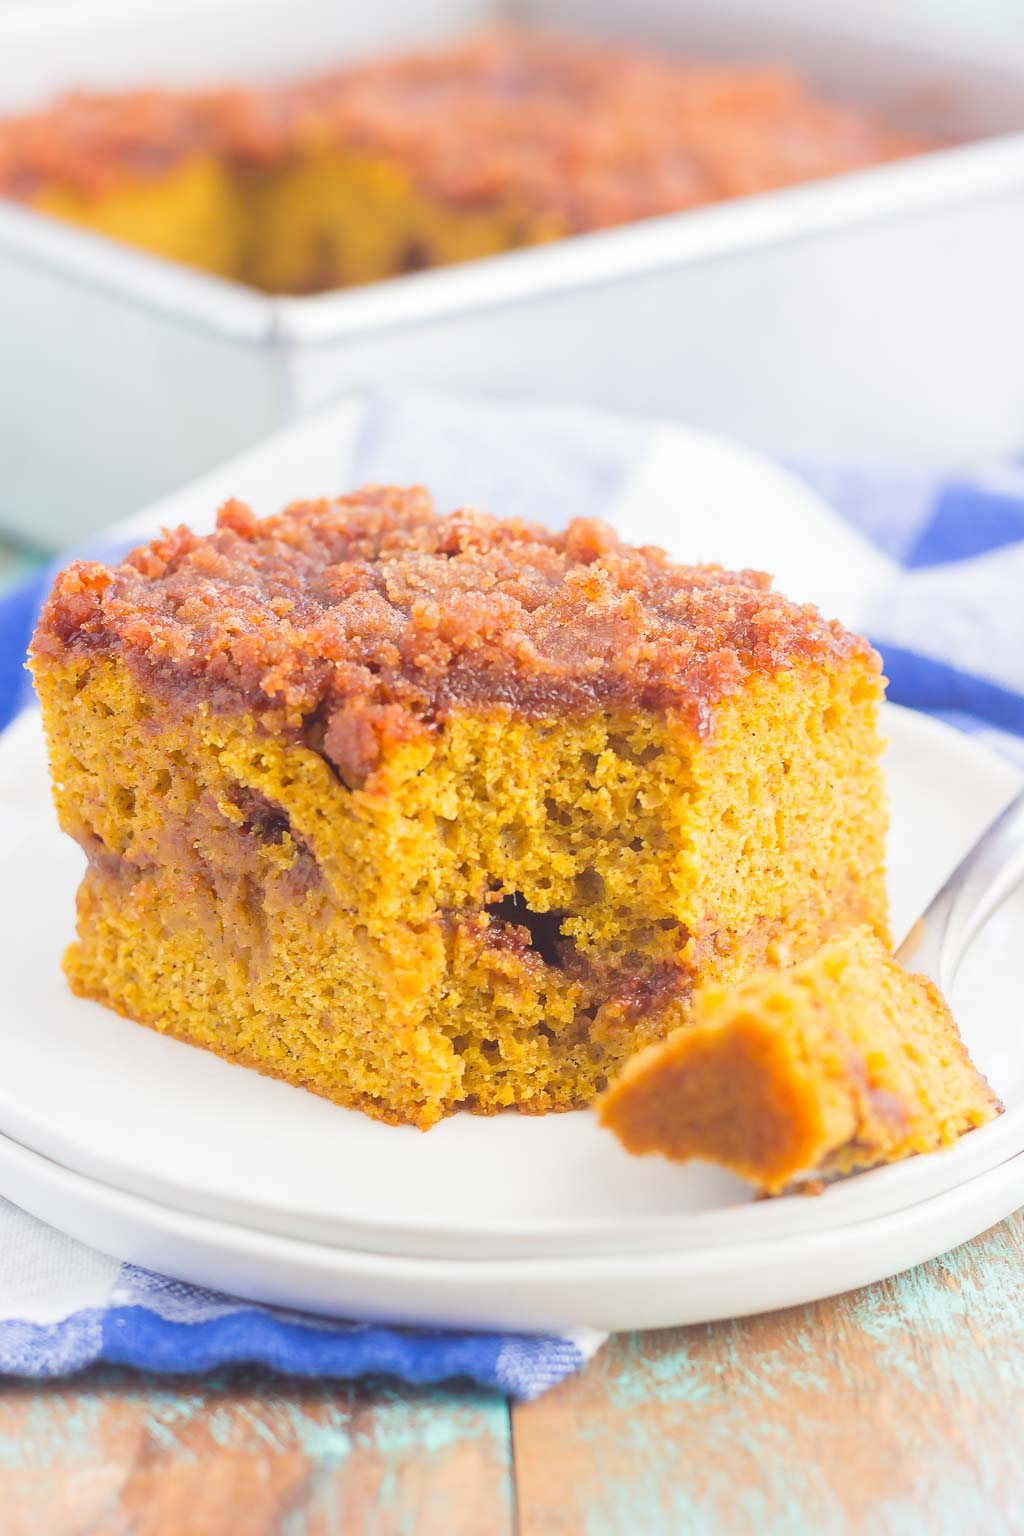 This Gluten Free Pumpkin Cinnamon Crumb Cake requires just a few ingredients and is ready in no time. Fluffy pumpkin cake is swirled with a sweet cinnamon streusel and then baked until golden. This easy cake is perfect to serve at all of your holiday gatherings! #cake #pumpkincake #crumbcake #glutenfree #glutenfreecake #glutenfreepumpkincake #pumpkincrumbcake #pumpkinrecipes #pumpkindessert #dessert